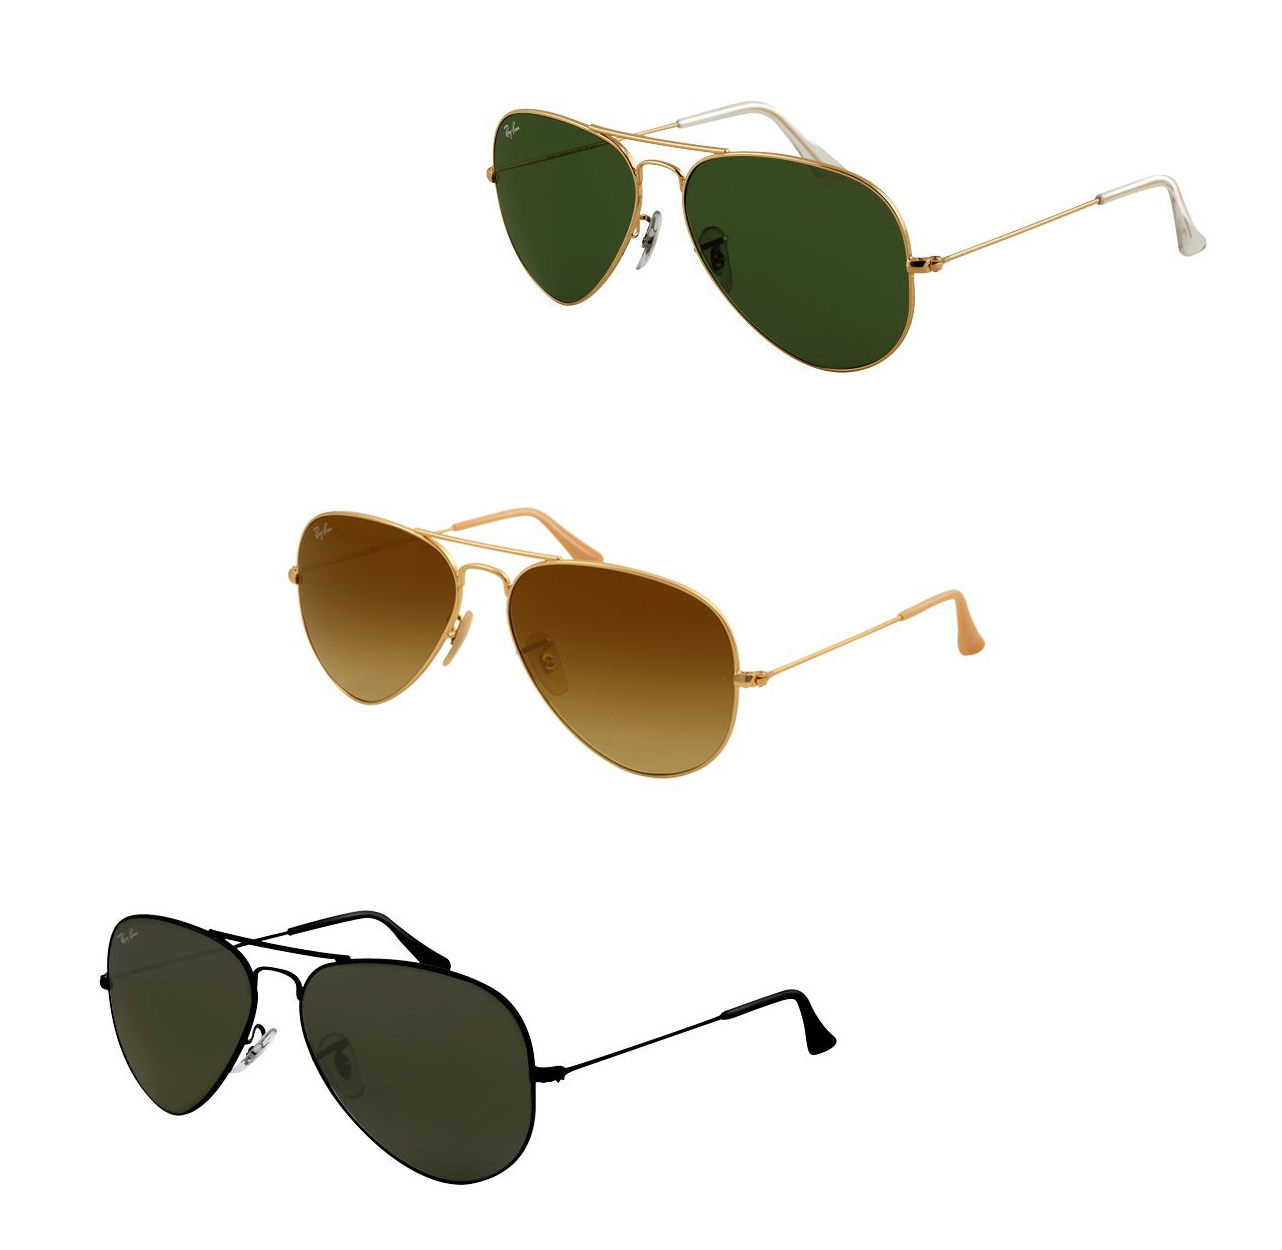 49955e22e Reviews & Ratings for Ray-Ban Aviator Large Metal Sunglasses RB3025